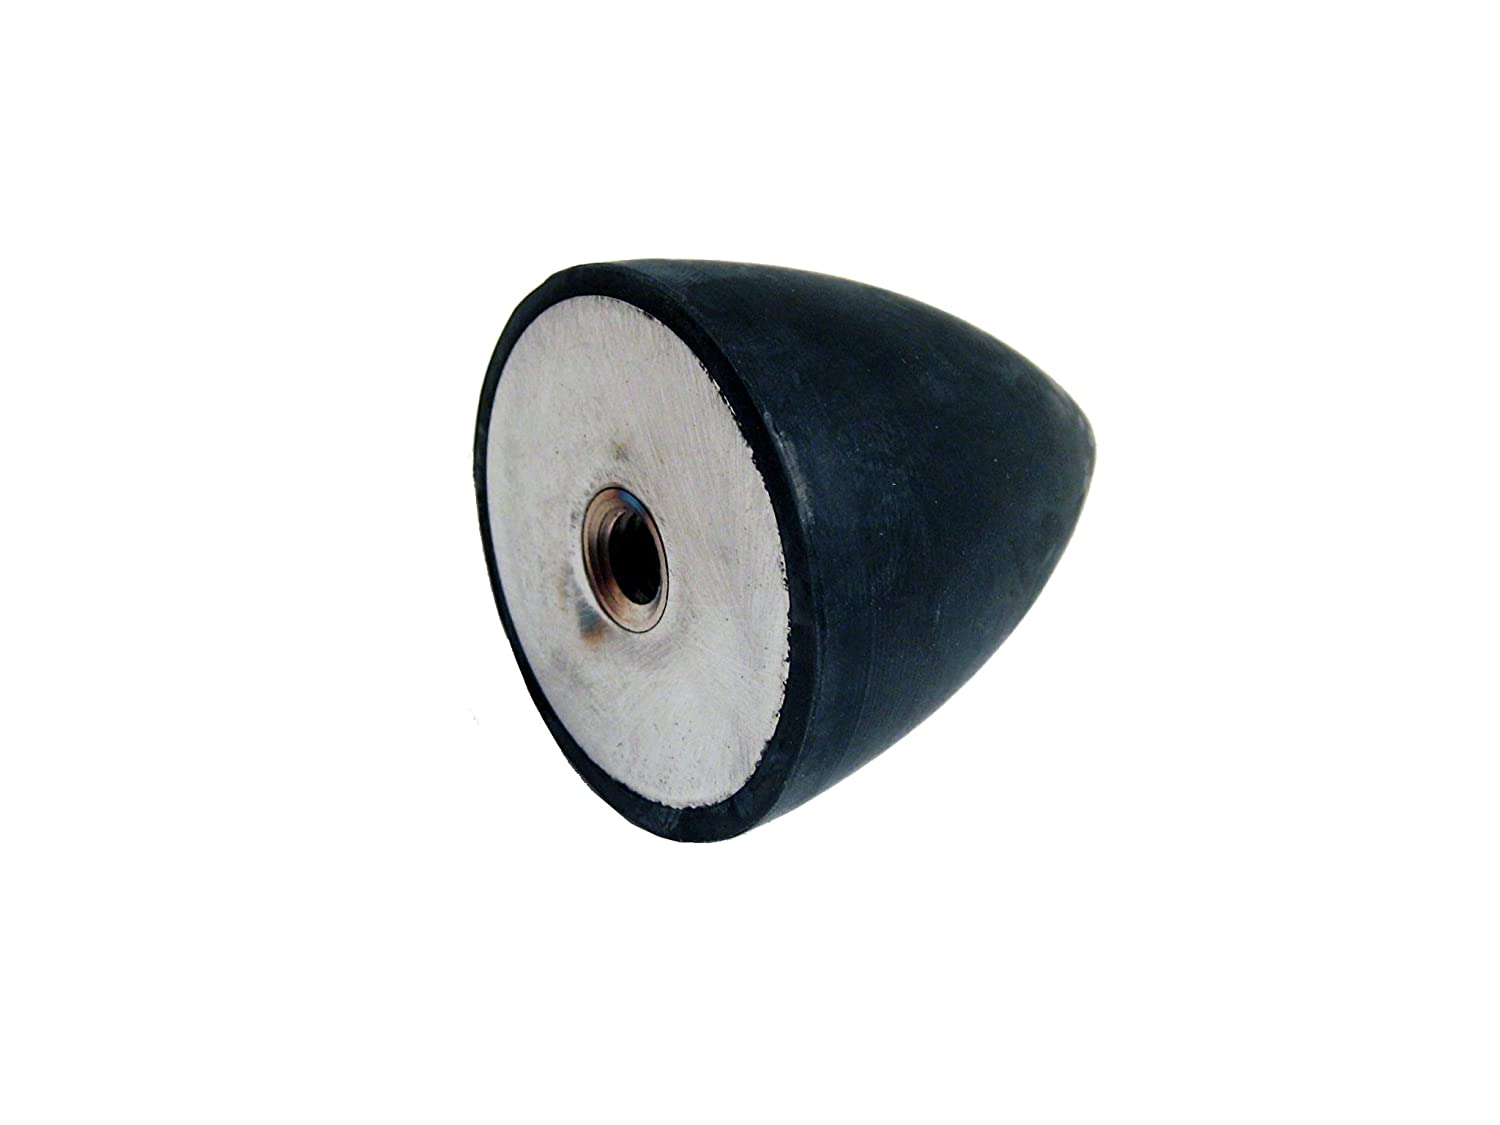 1.77 Height 5//16-18 Thread JW Winco 453.2-38-45-5//16-55 Series GN 453.2 Rubber Conical Vibration//Shock Absorption Mount with Tapped Hole 1.50 Diameter Inch Size